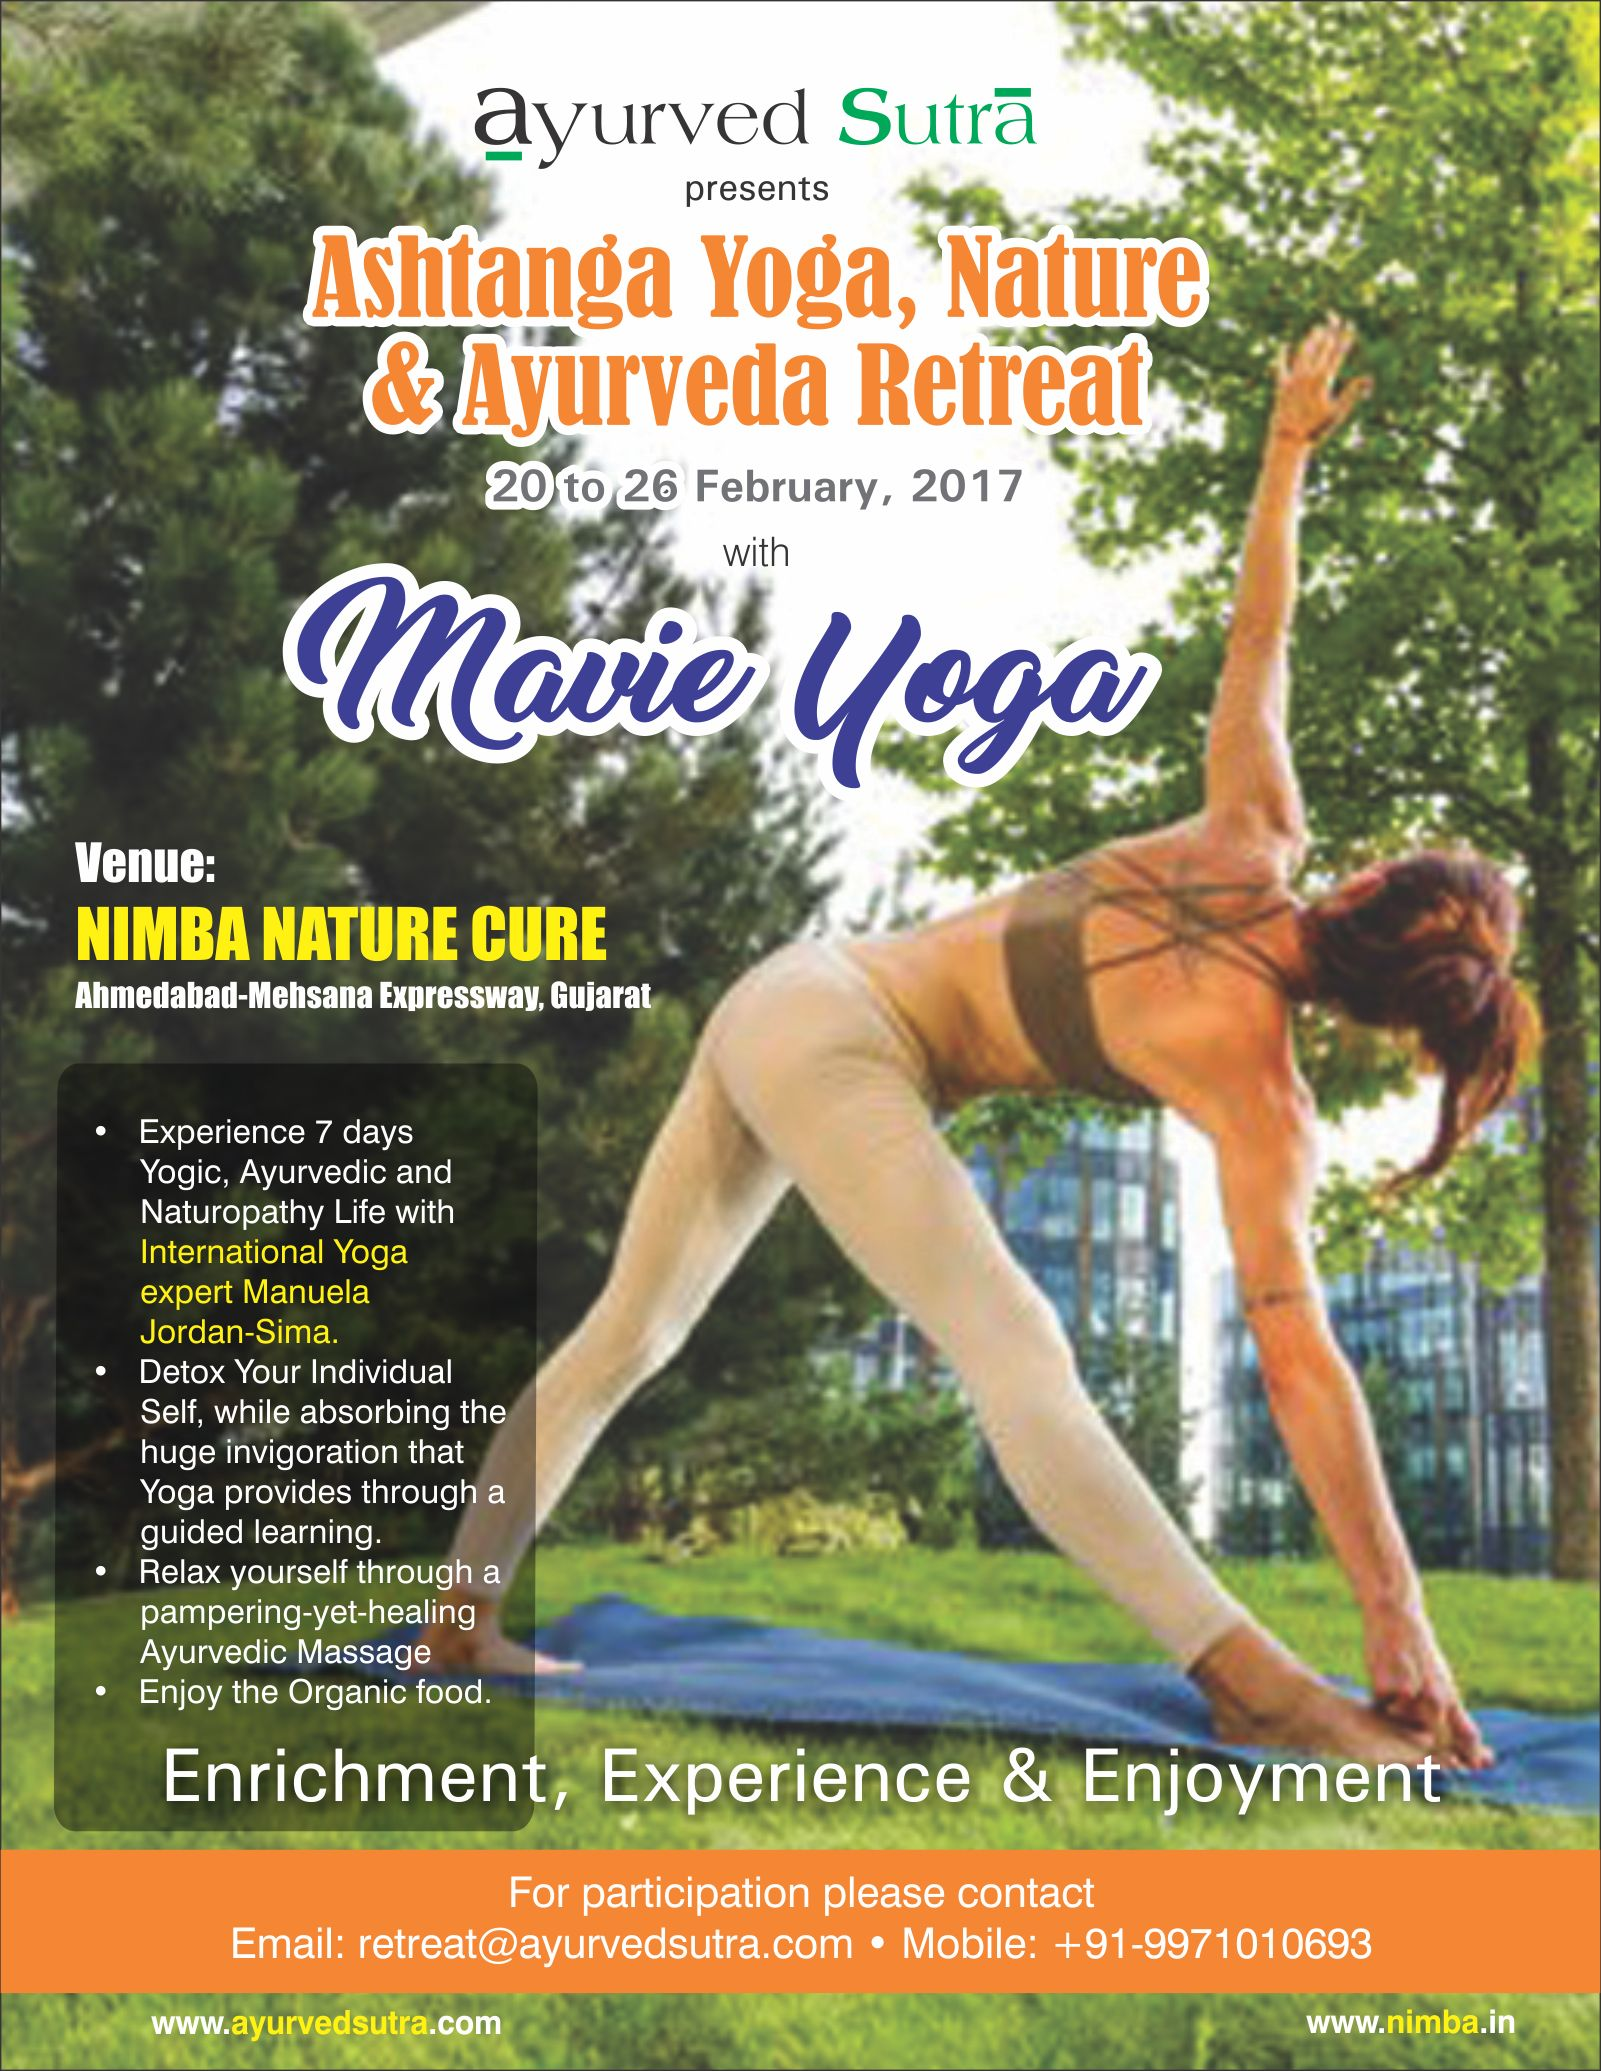 ASHTANGA YOGA, NATURE & AYURVEDA RETREAT